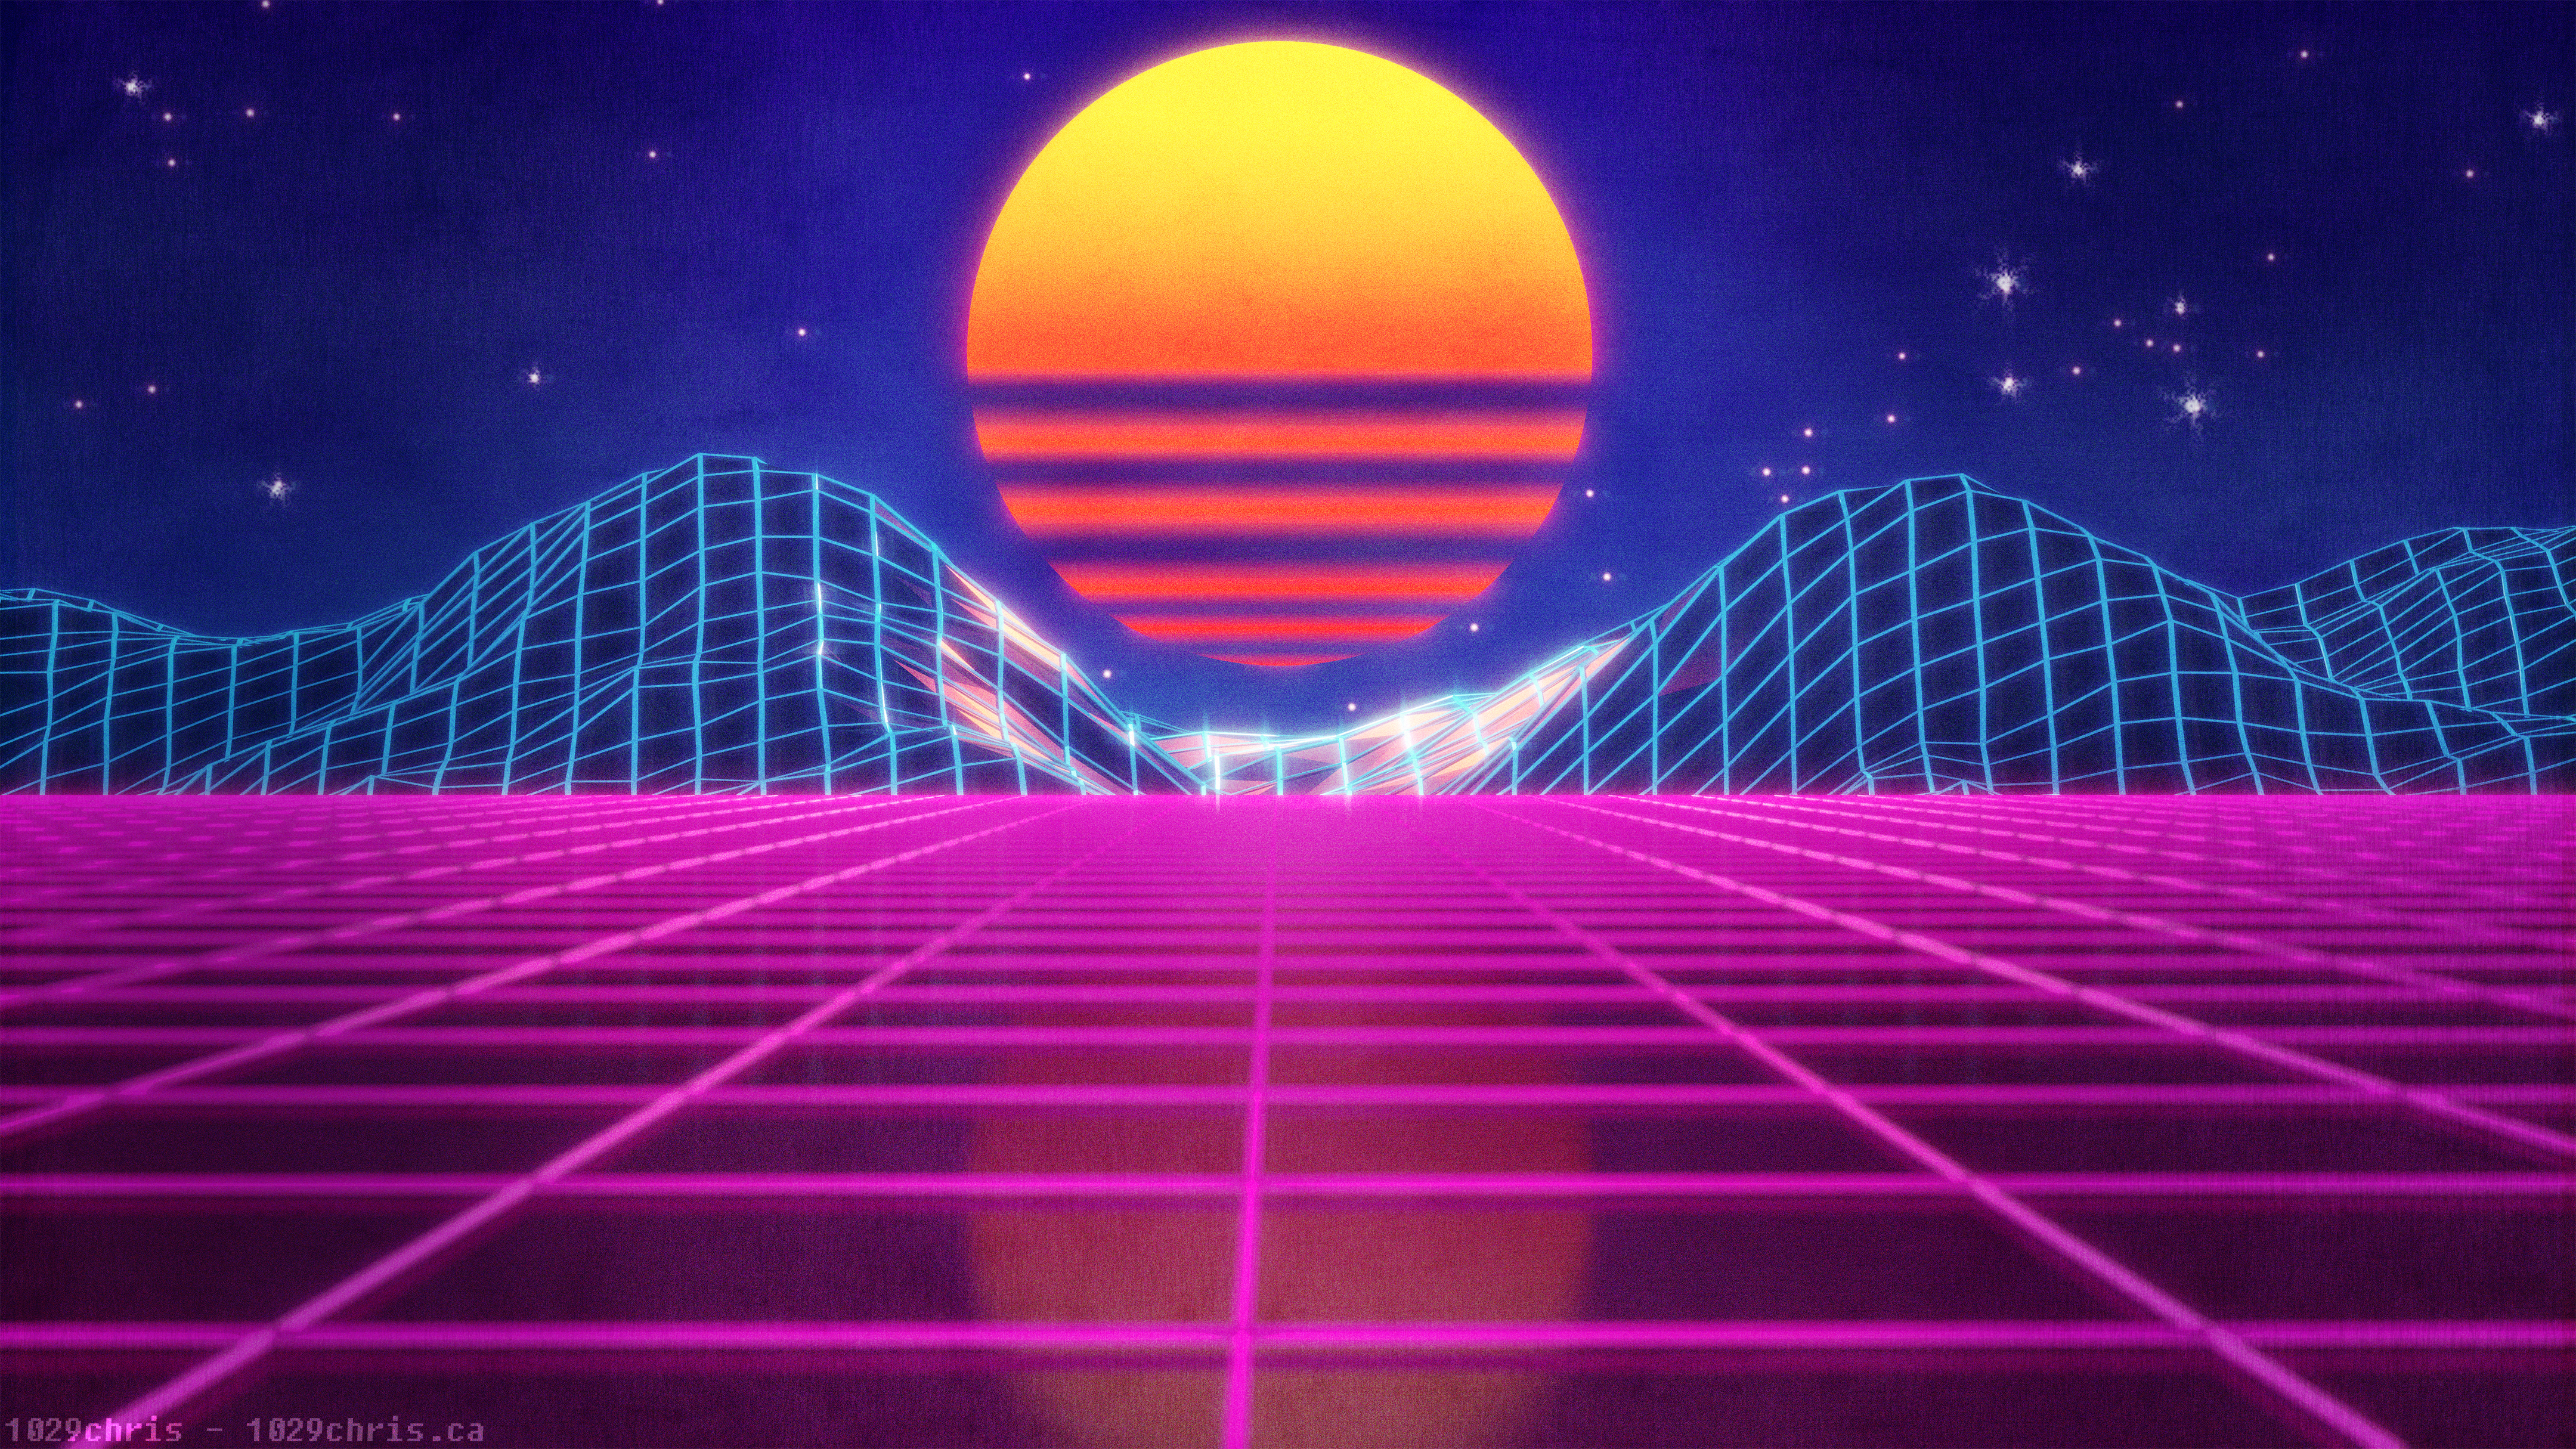 69 retro wave hd wallpapers | background images - wallpaper abyss